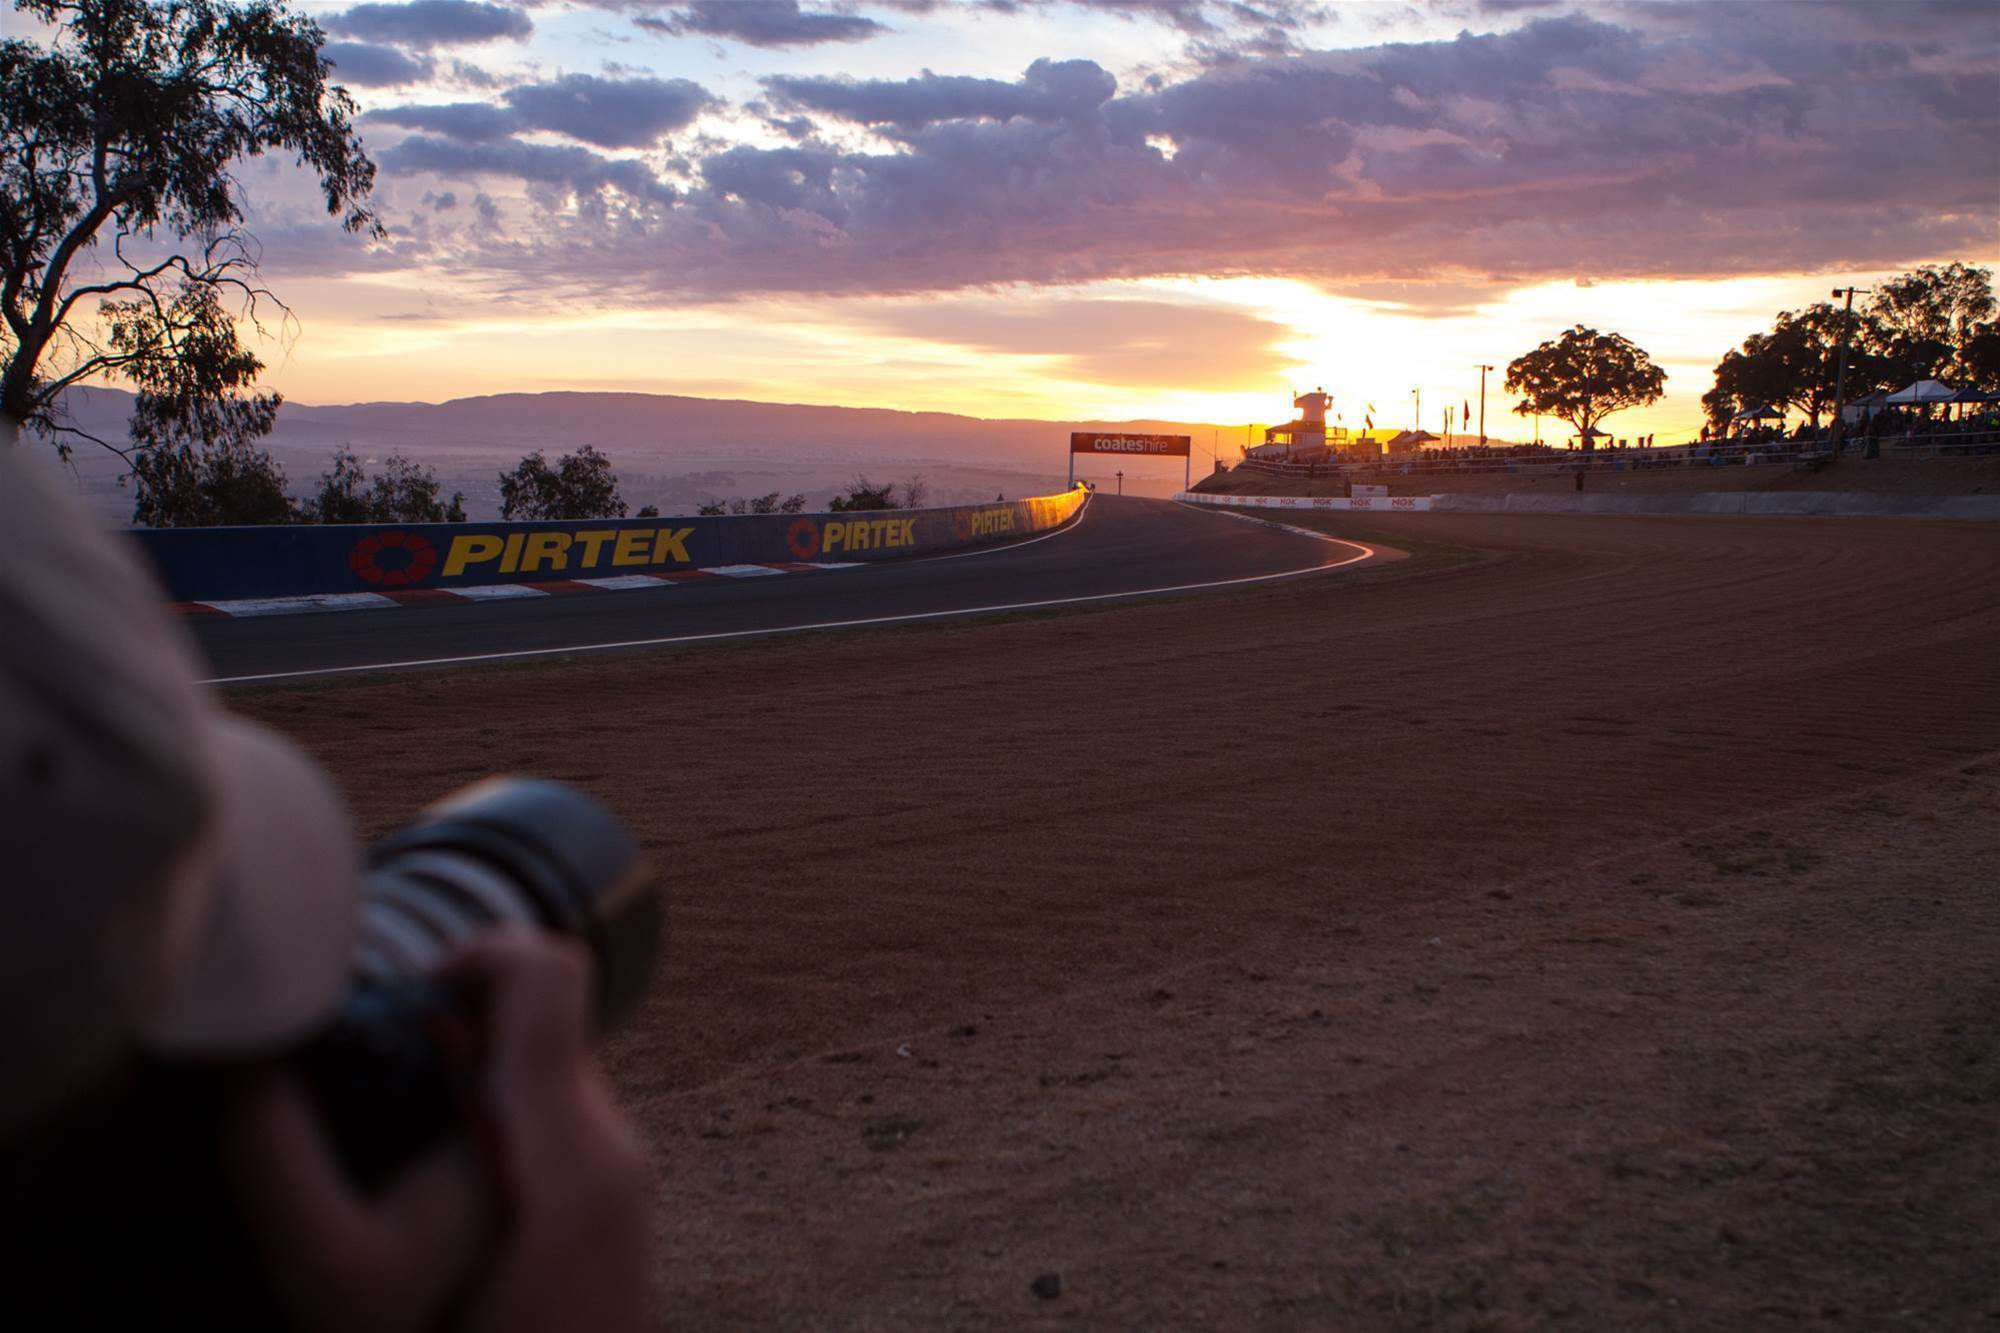 pic gallery: images from Mount Panorama